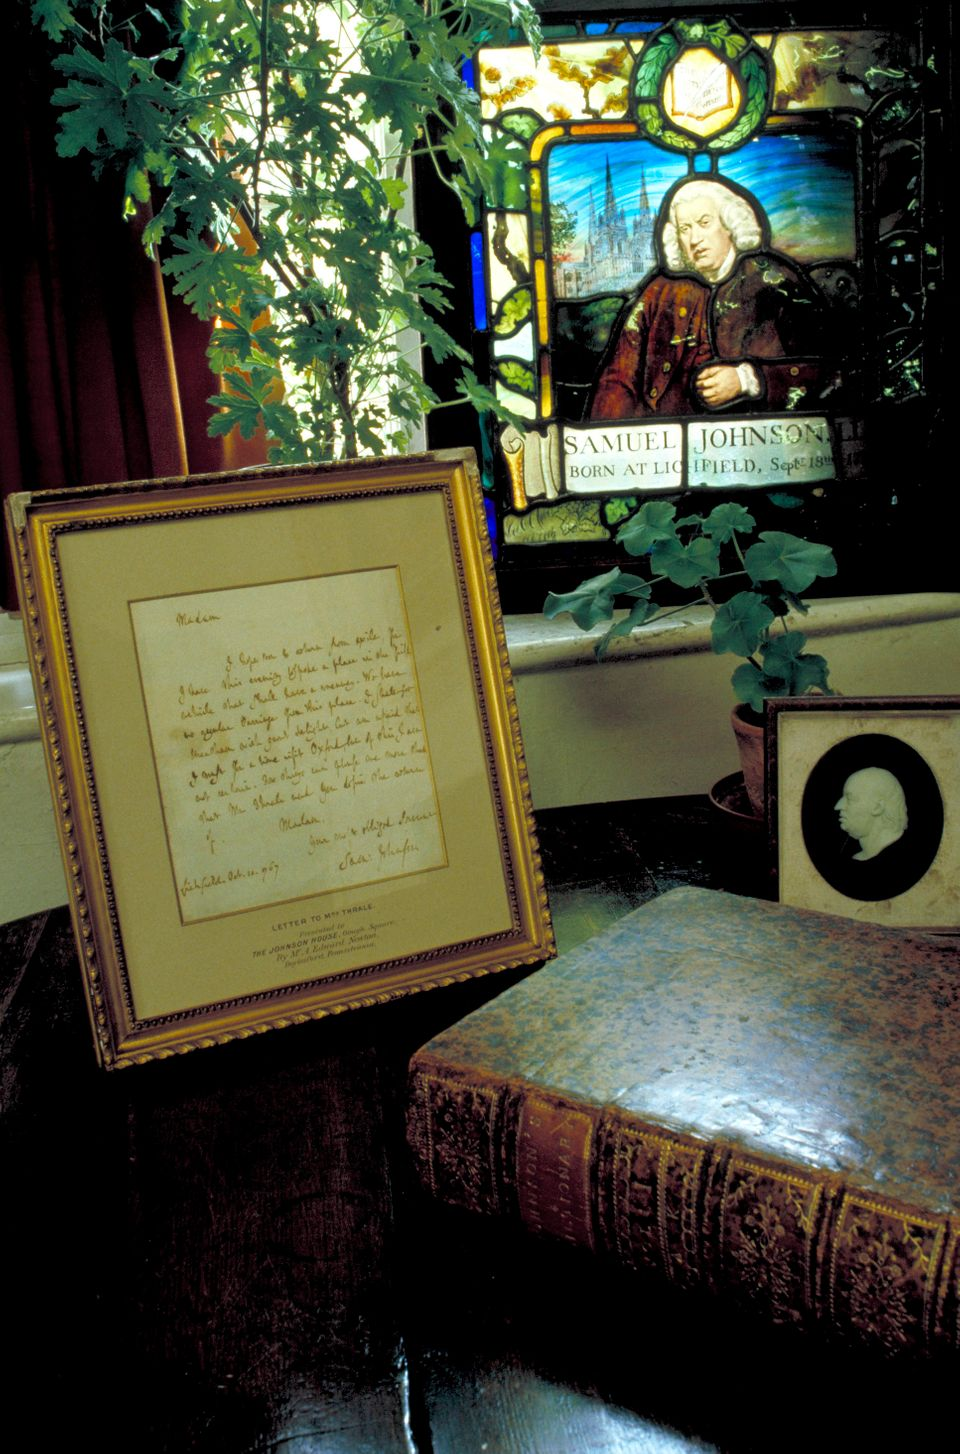 This March 17, 2009 photo released by VisitBritain shows shows a letter written by Samuel Johnson and a copy of the dictionar